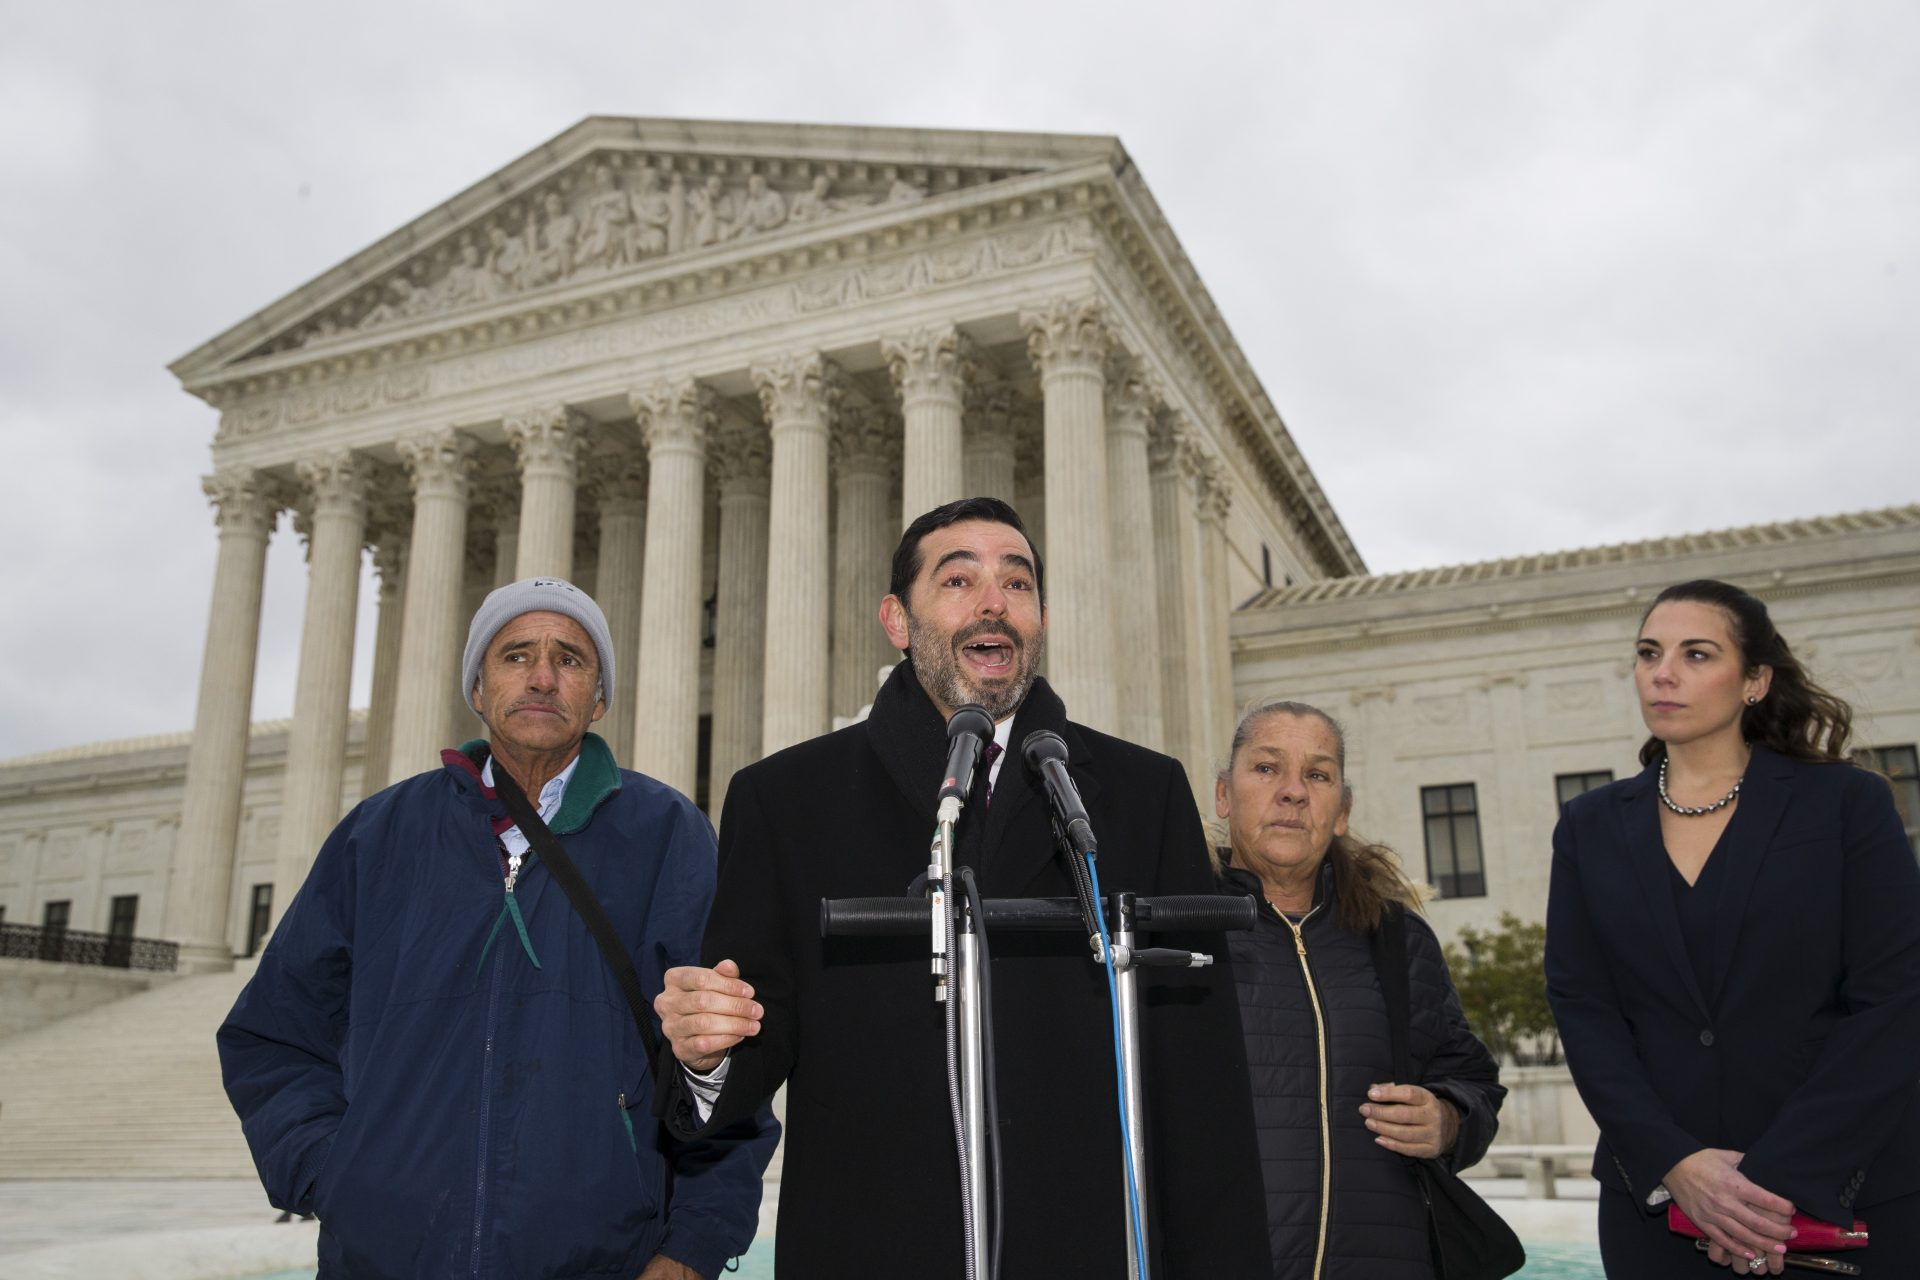 Attorney Cristobal Galindo, second from left, speaks accompanied by Jesus Hernandez, left, and Maria Guereca, and attorney Marion Reilly after oral arguments in front of the Supreme Court, Tuesday, Nov. 12, 2019 in Washington. The case involves U.S. border patrol agent Jesus Mesa, Jr., who fired at least two shots across the Mexican border, killing Sergio Adrian Hernandez Guereca, 15, who'd been playing in the concrete culvert between El Paso and Cuidad Juarez.